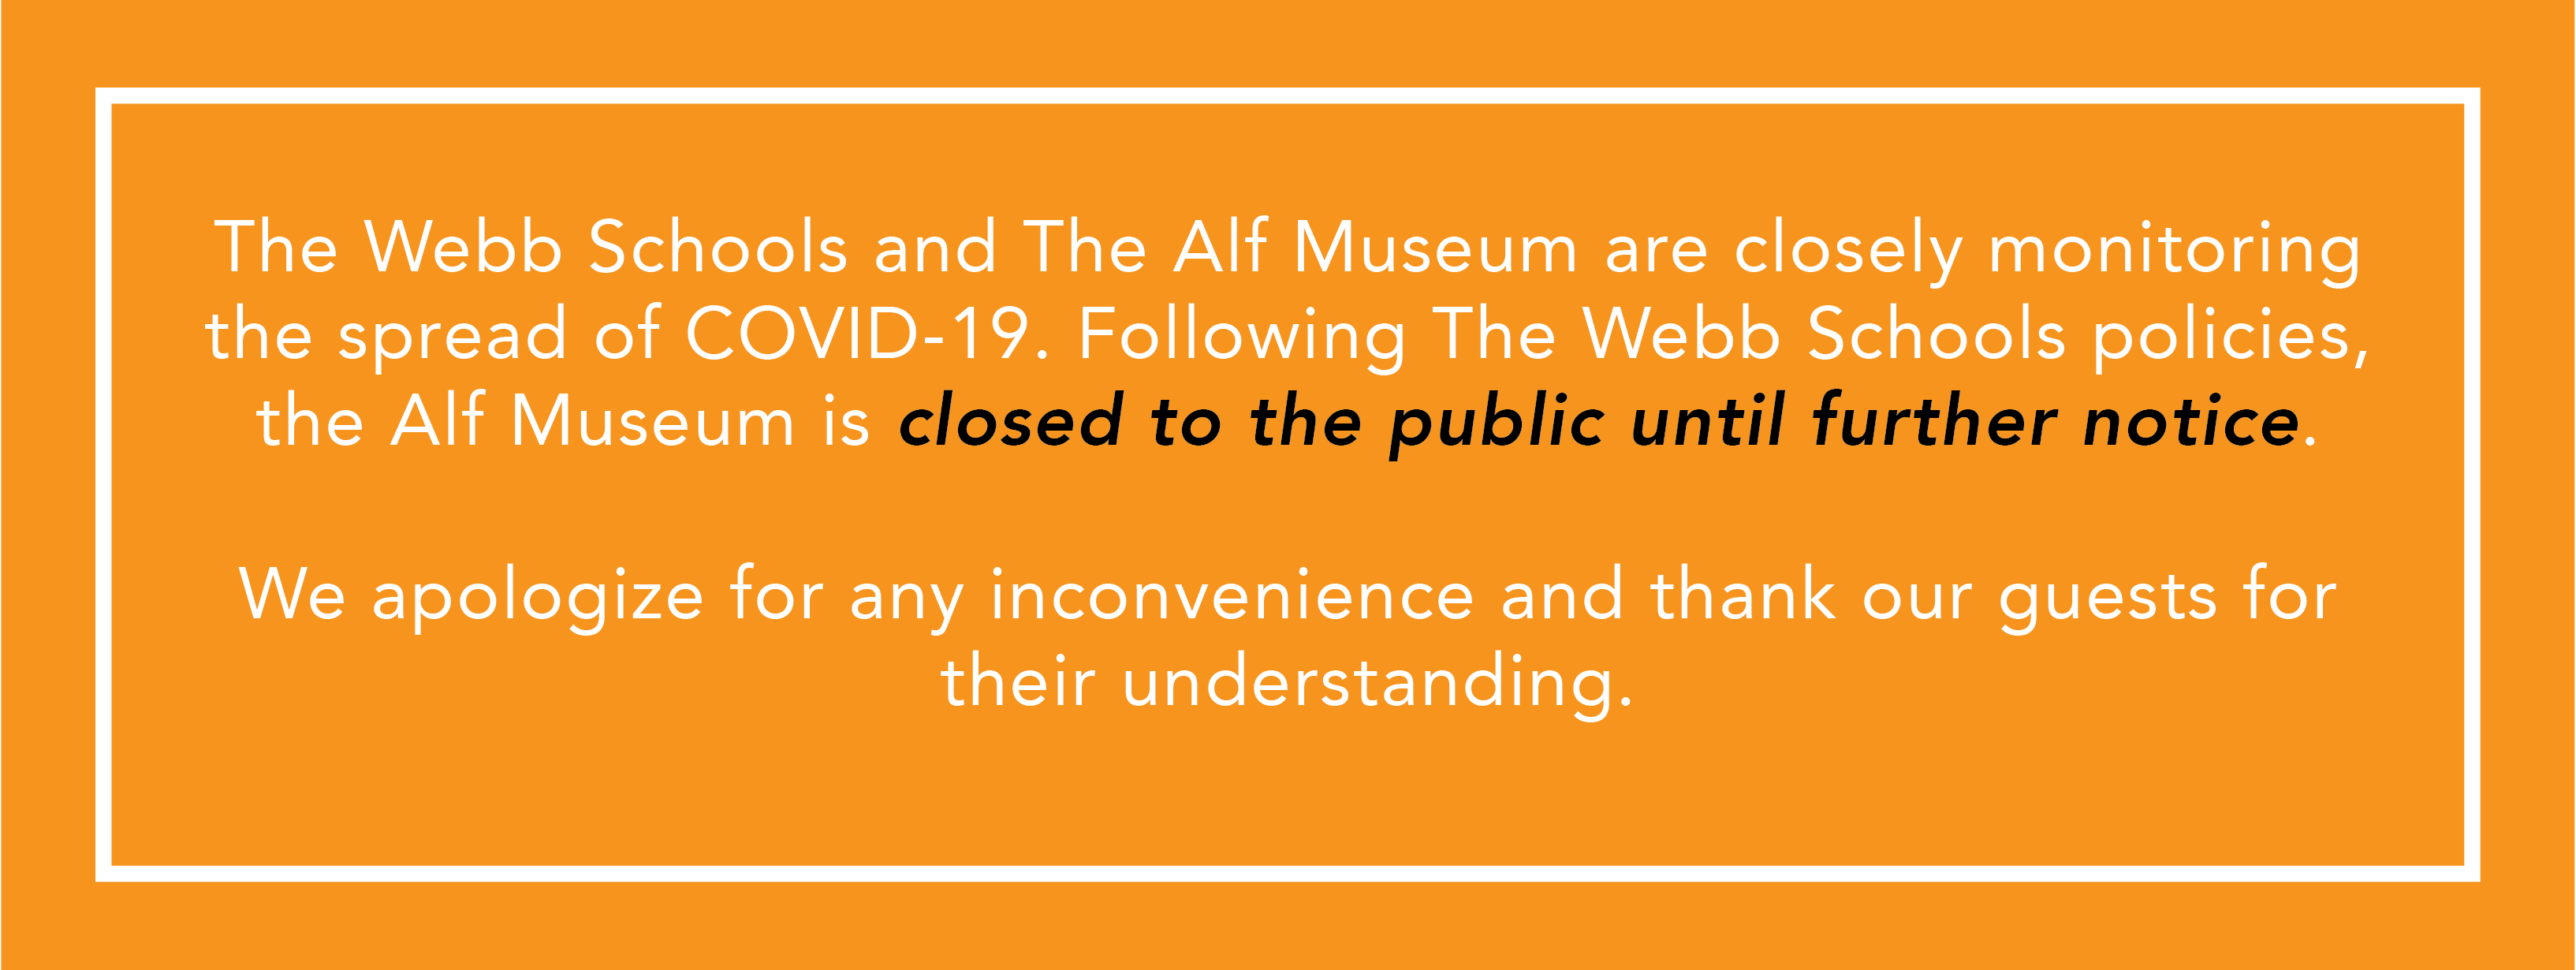 Text: The Webb Schools and The Alf Museum are closely monitoring the spread of COVID-19. Following The Webb Schools policies, the Alf Museum is closed to the public until further notice. We apologize for any inconvenience and thank our guests for their understanding.